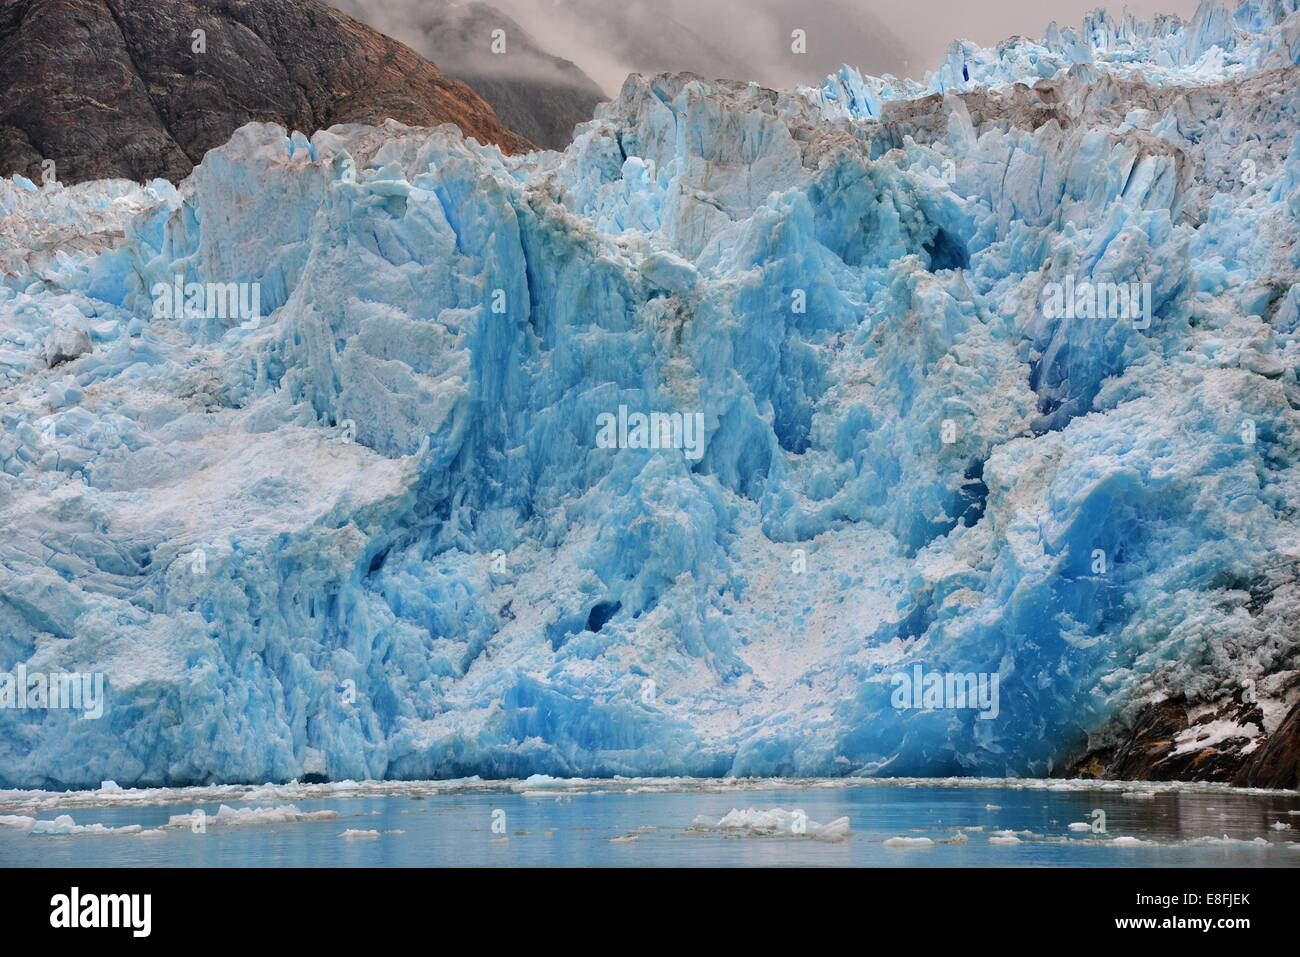 USA, Alaska, Tongass National Forest, Blue Ice Süd Sawyer Gletscher Stockbild